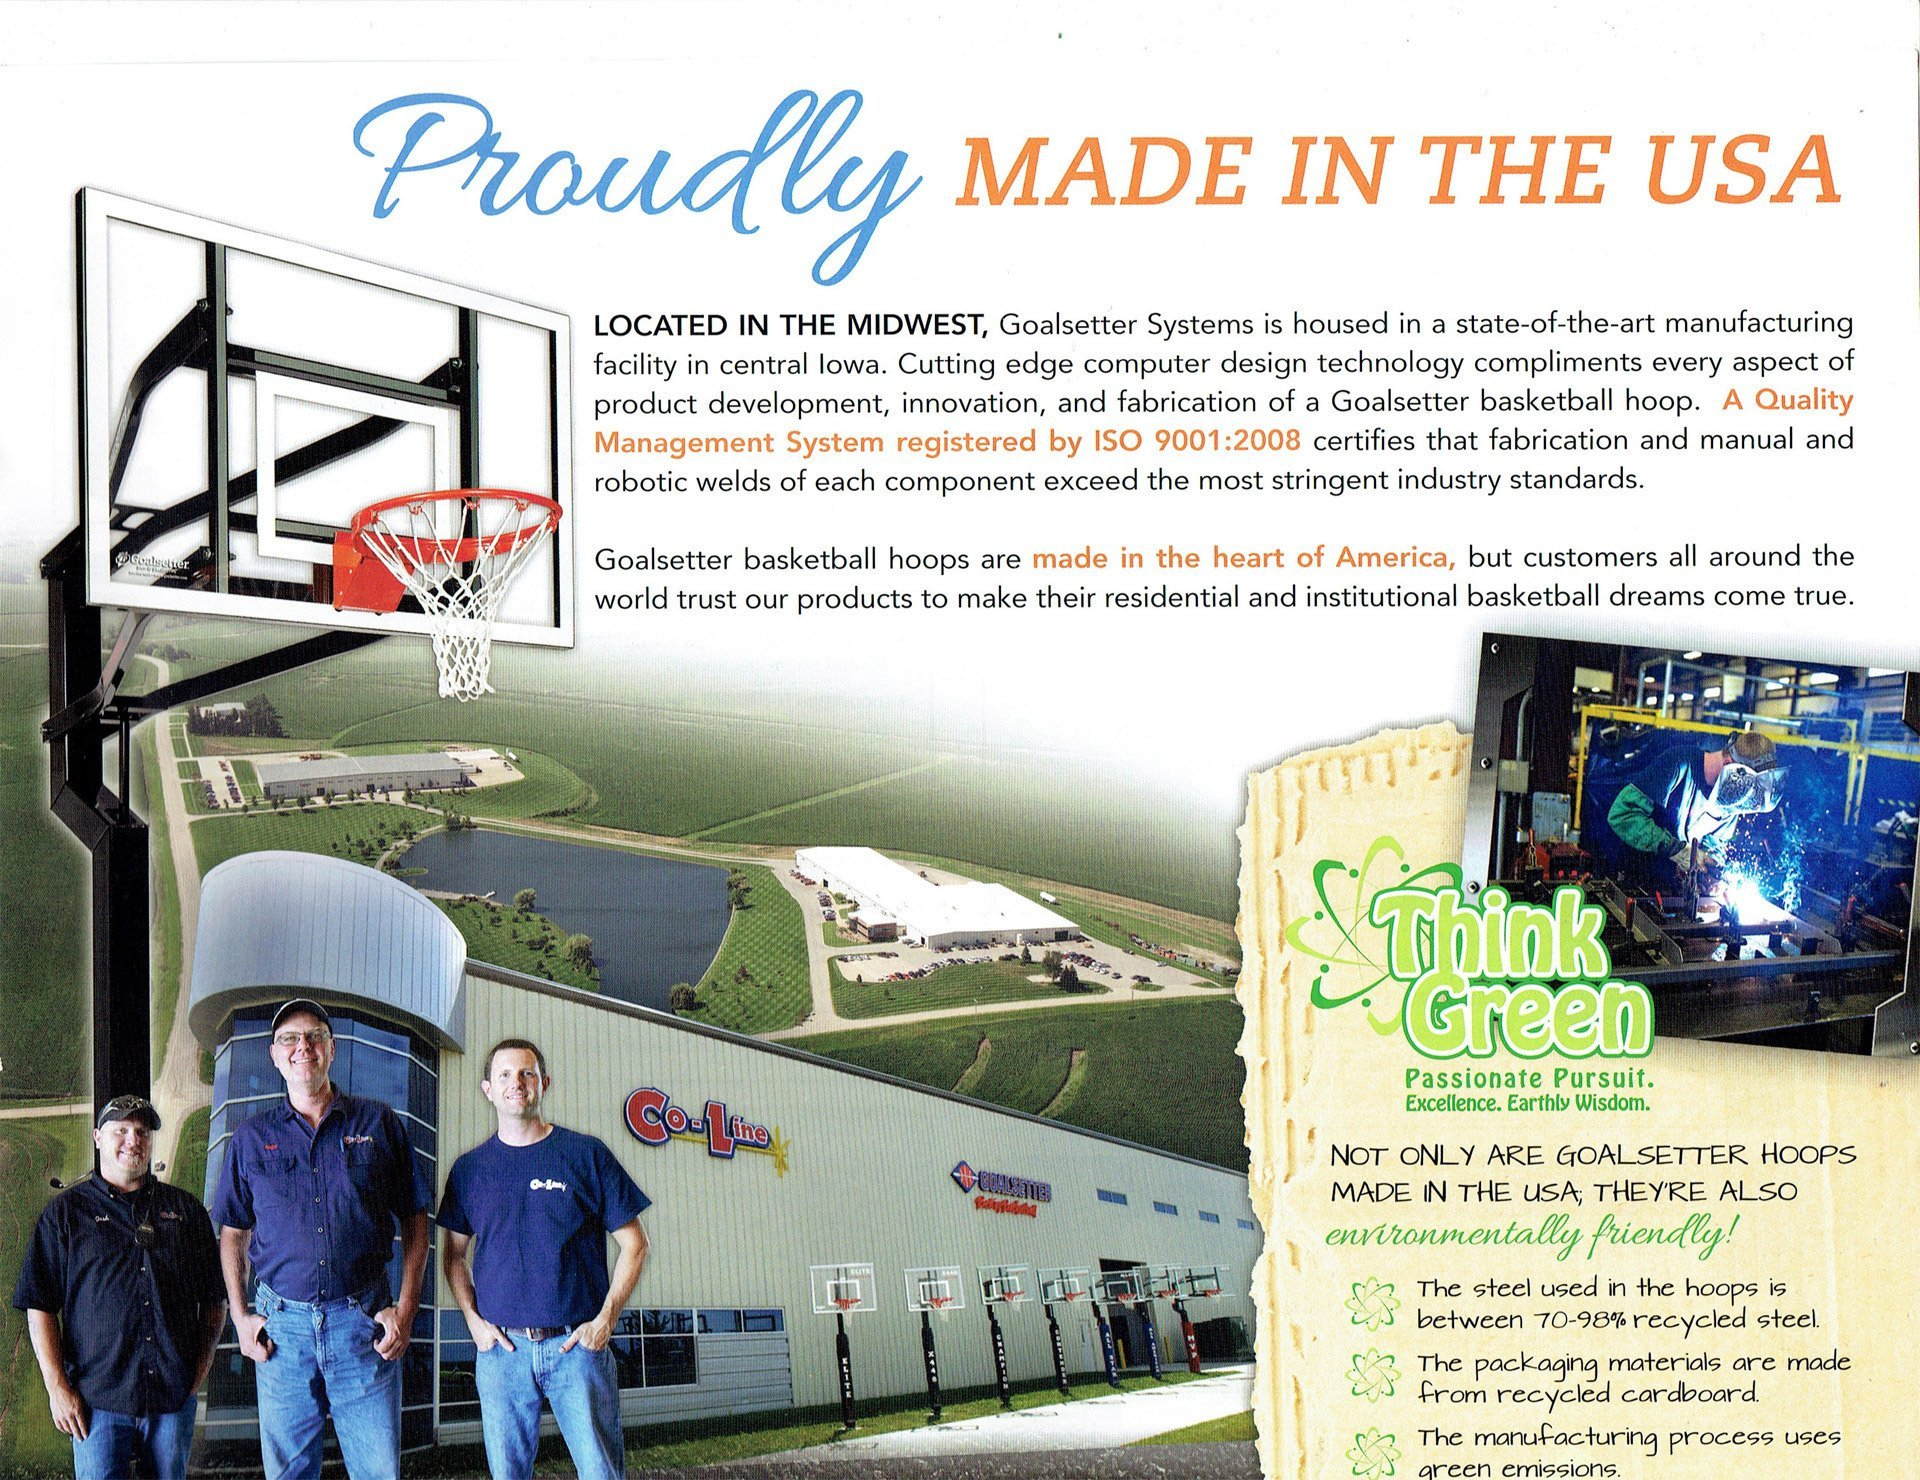 goalsetter basketball systems are made in the USA - Wood Kingdom East - Coram, Long Island, Medford, The Hamptons